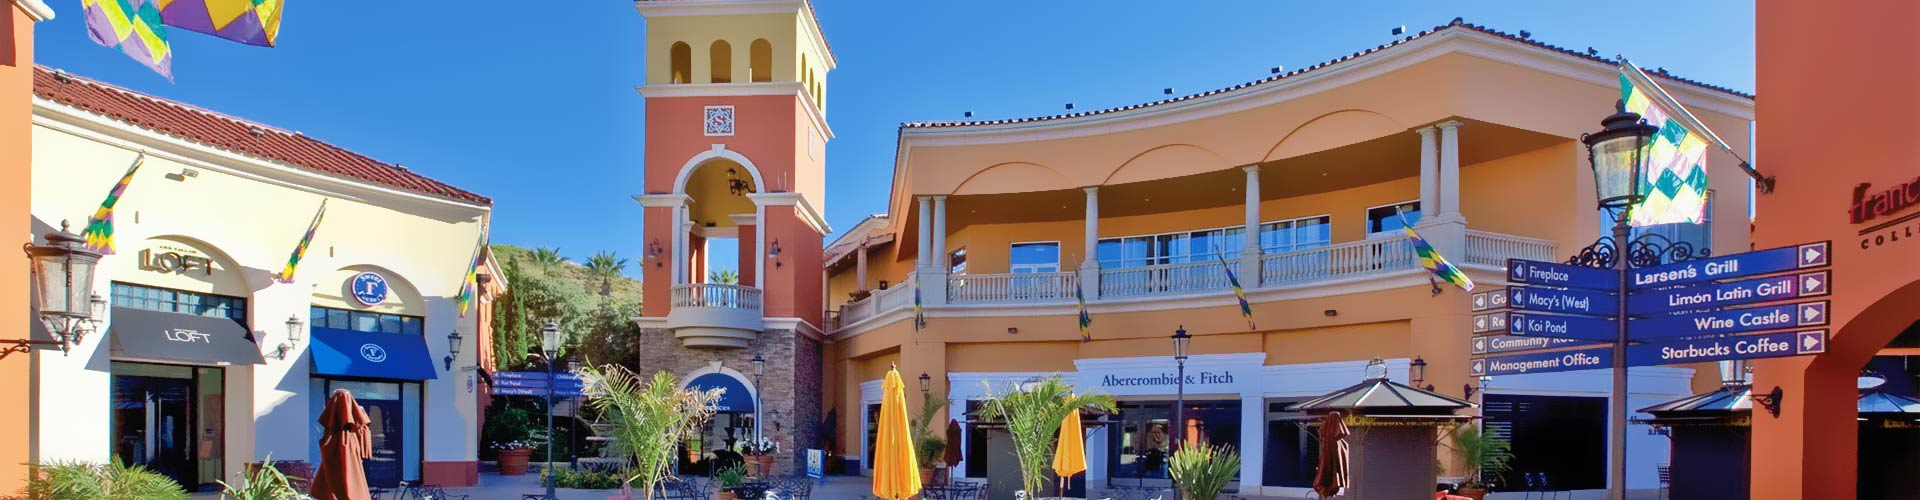 Simivalley Town Center Header